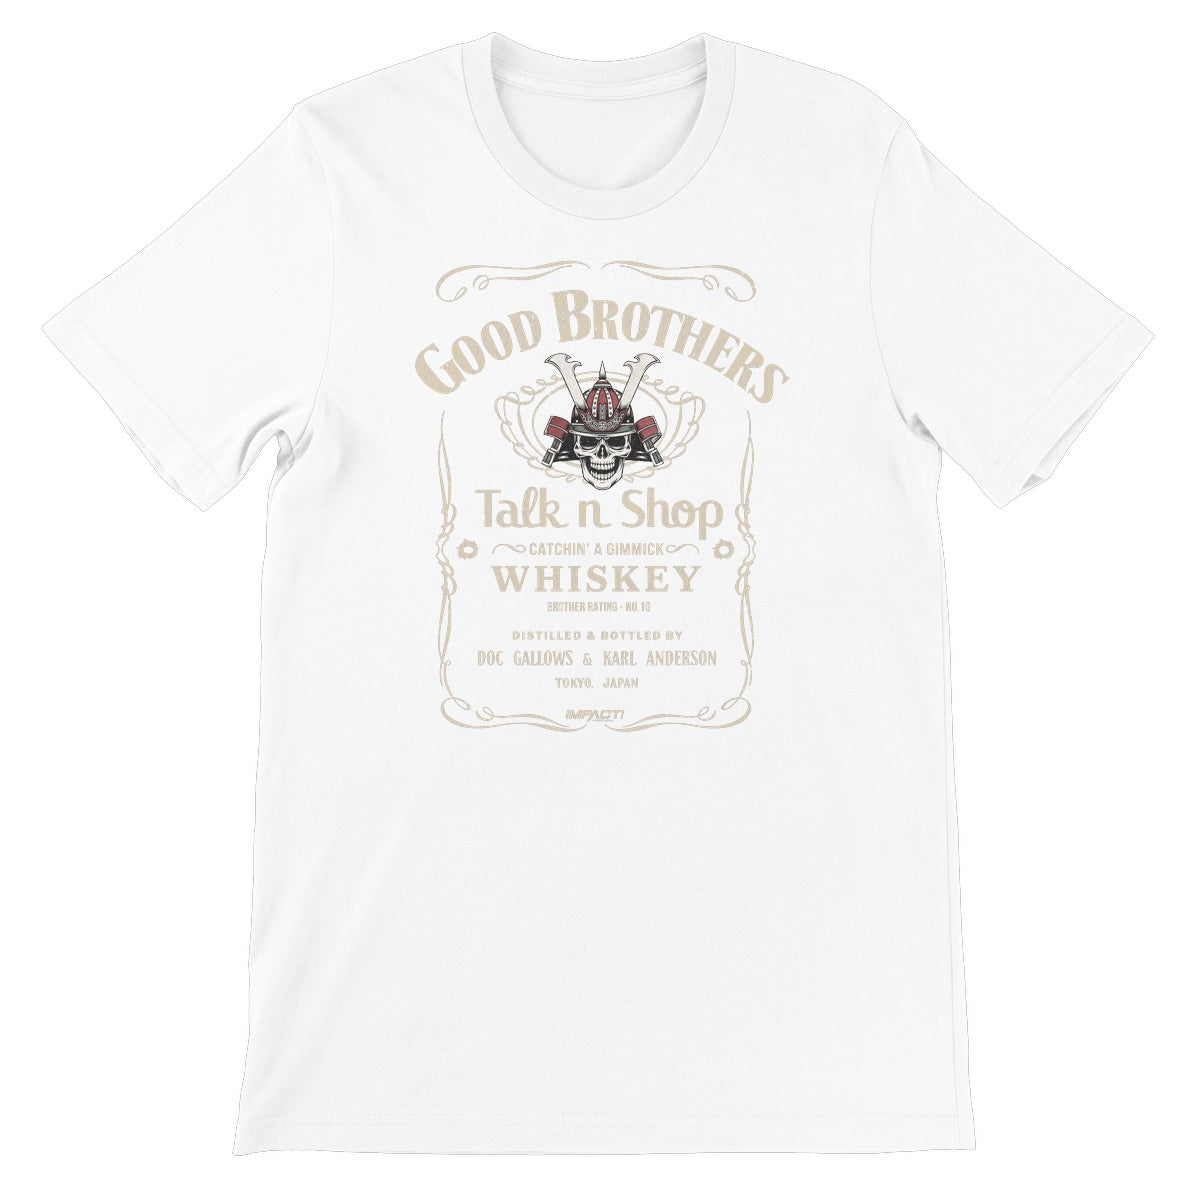 The Good Brothers 'Talk n Shop Unisex Short Sleeve T-Shirt